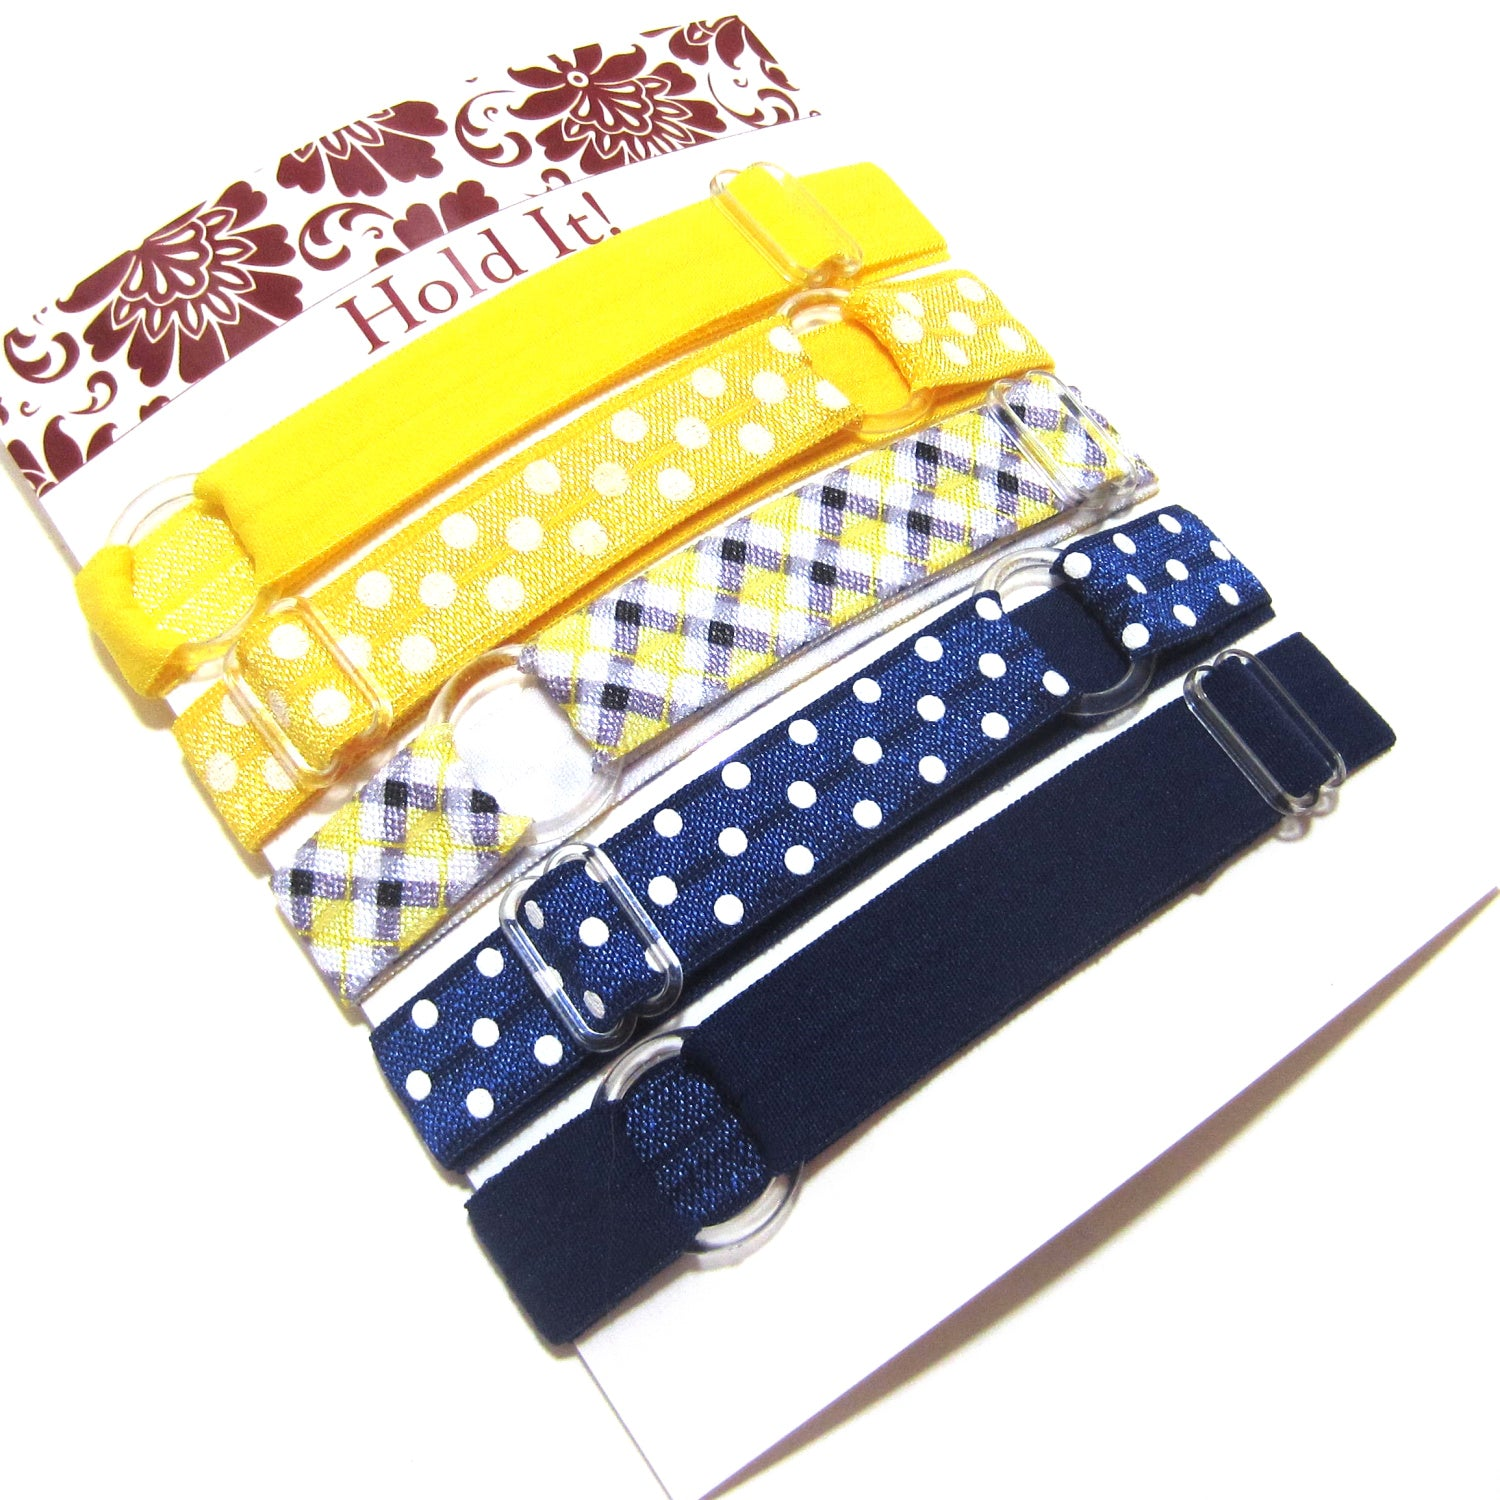 Set of 5 Adjustable Headbands - Yellow Tartan Plaid - Hold It!